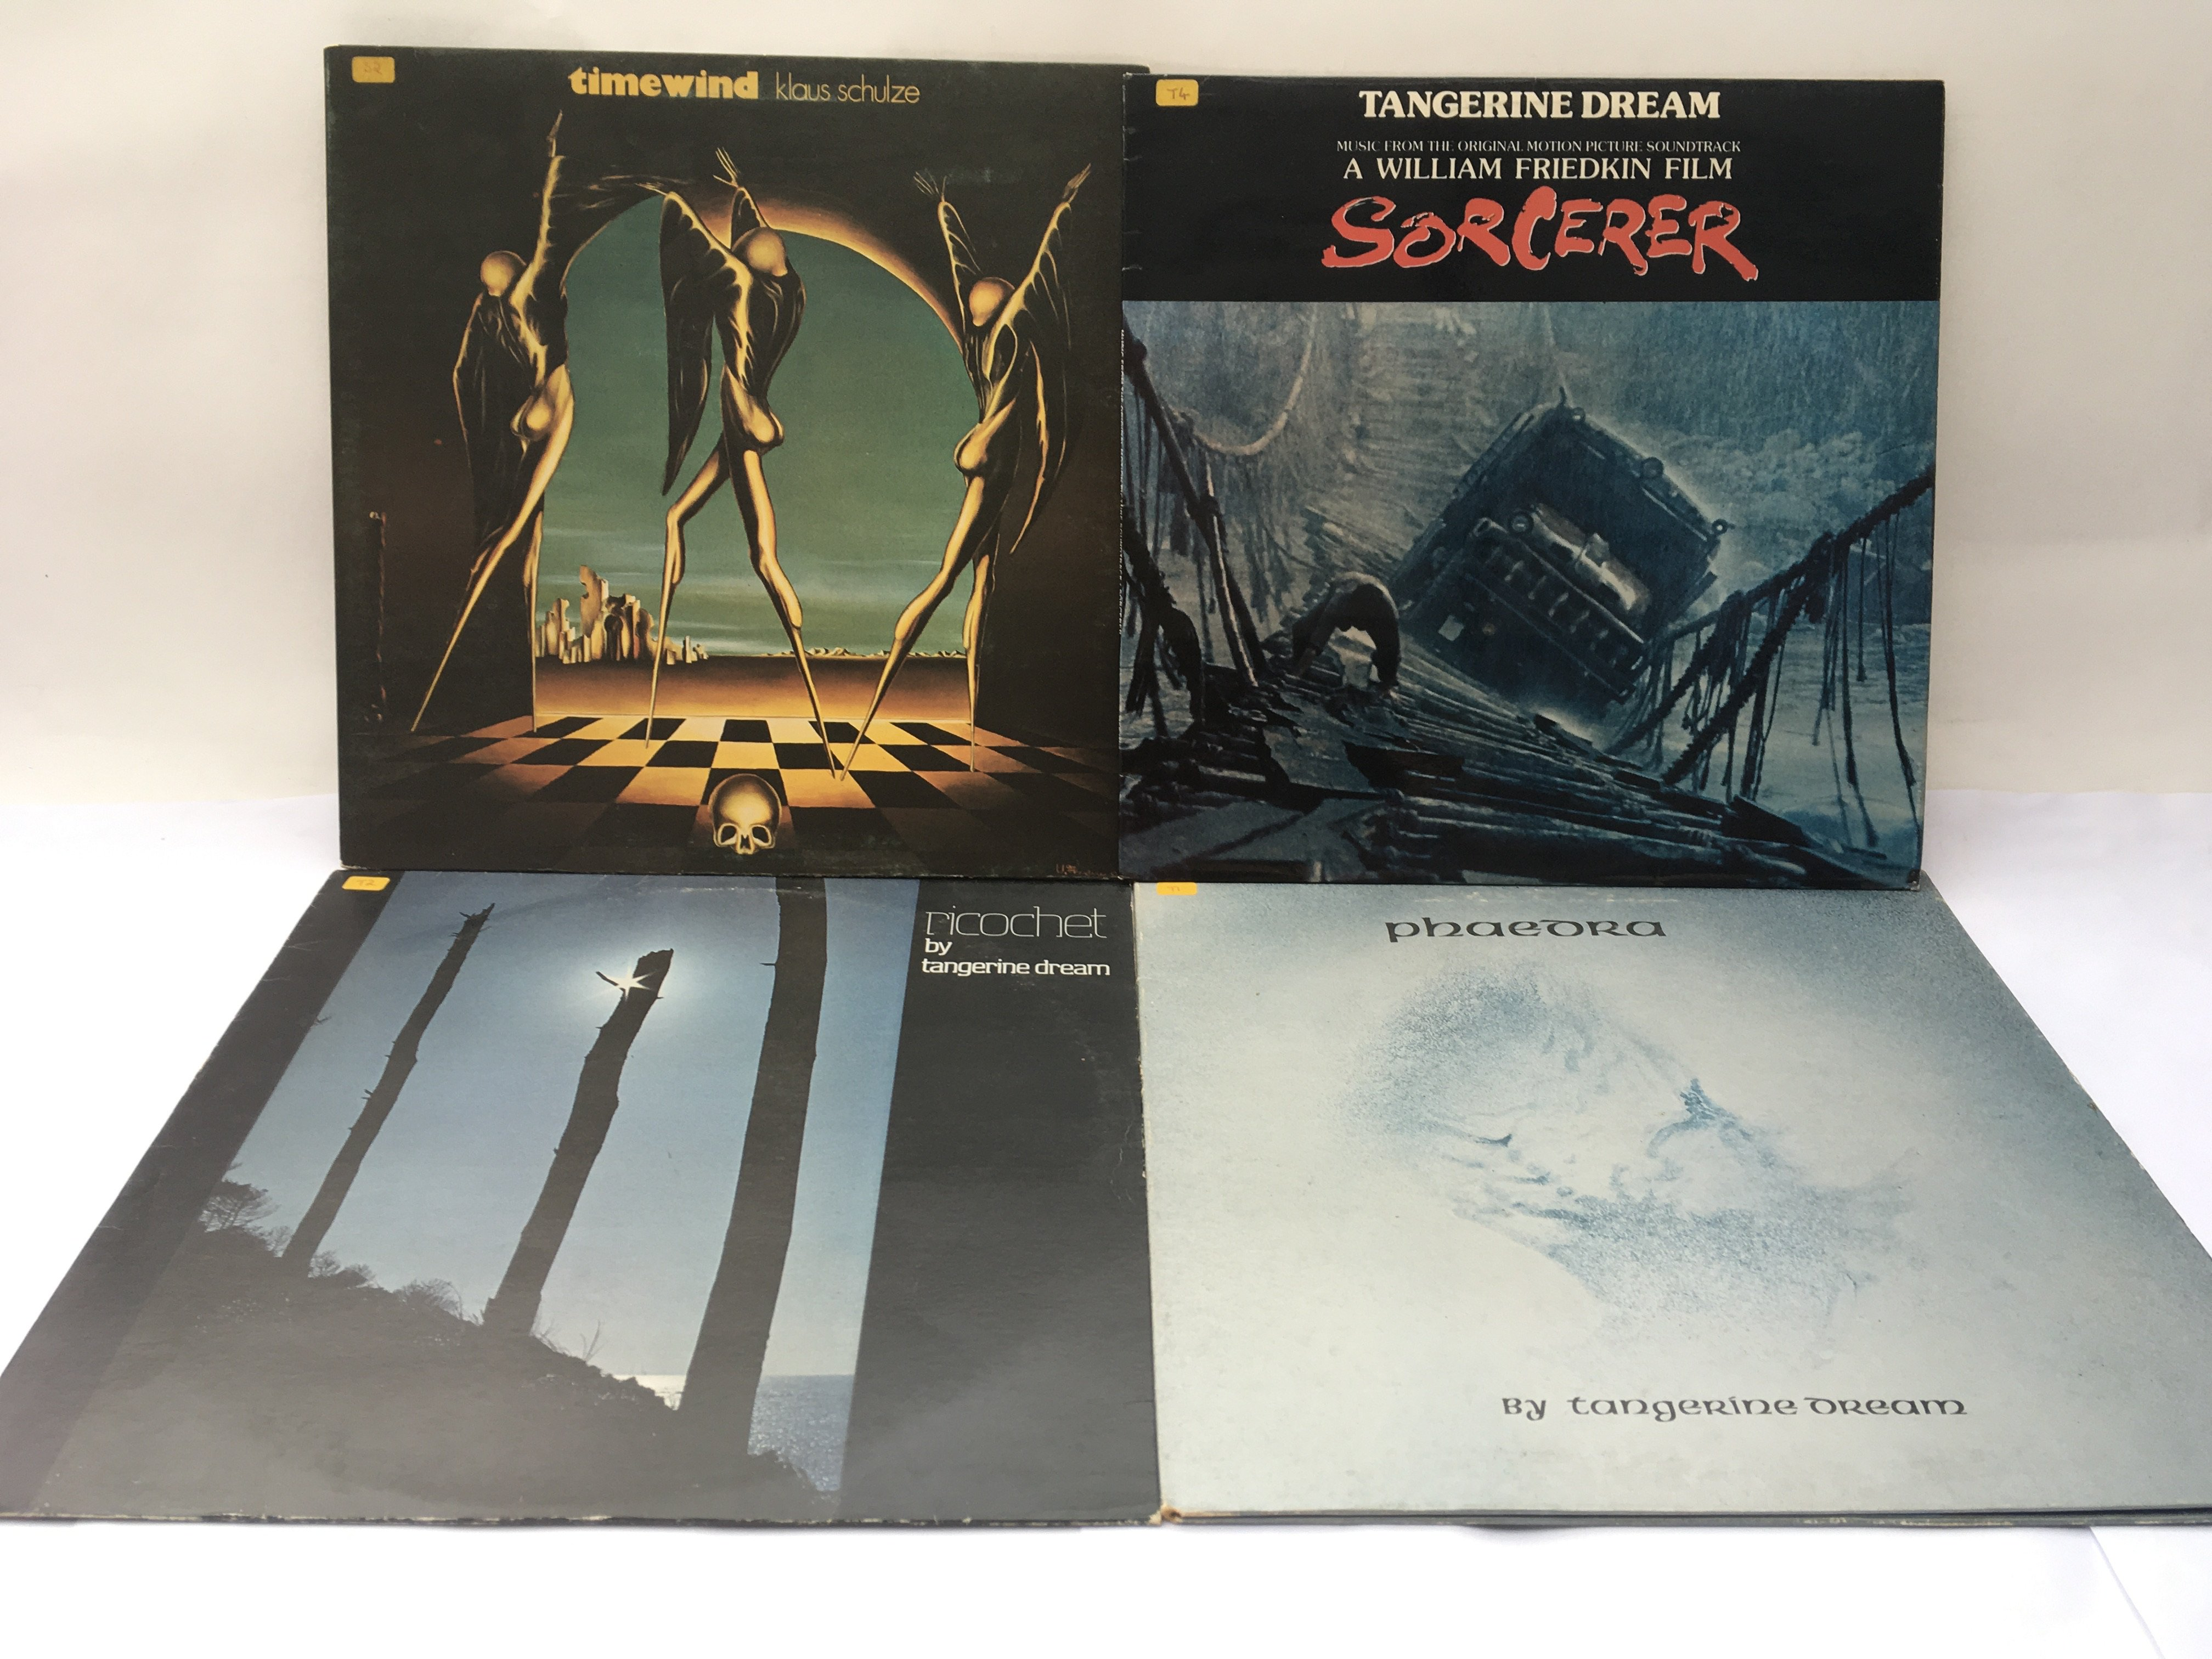 Three Tangerine Dream LPs and 'Timewind' by Klaus